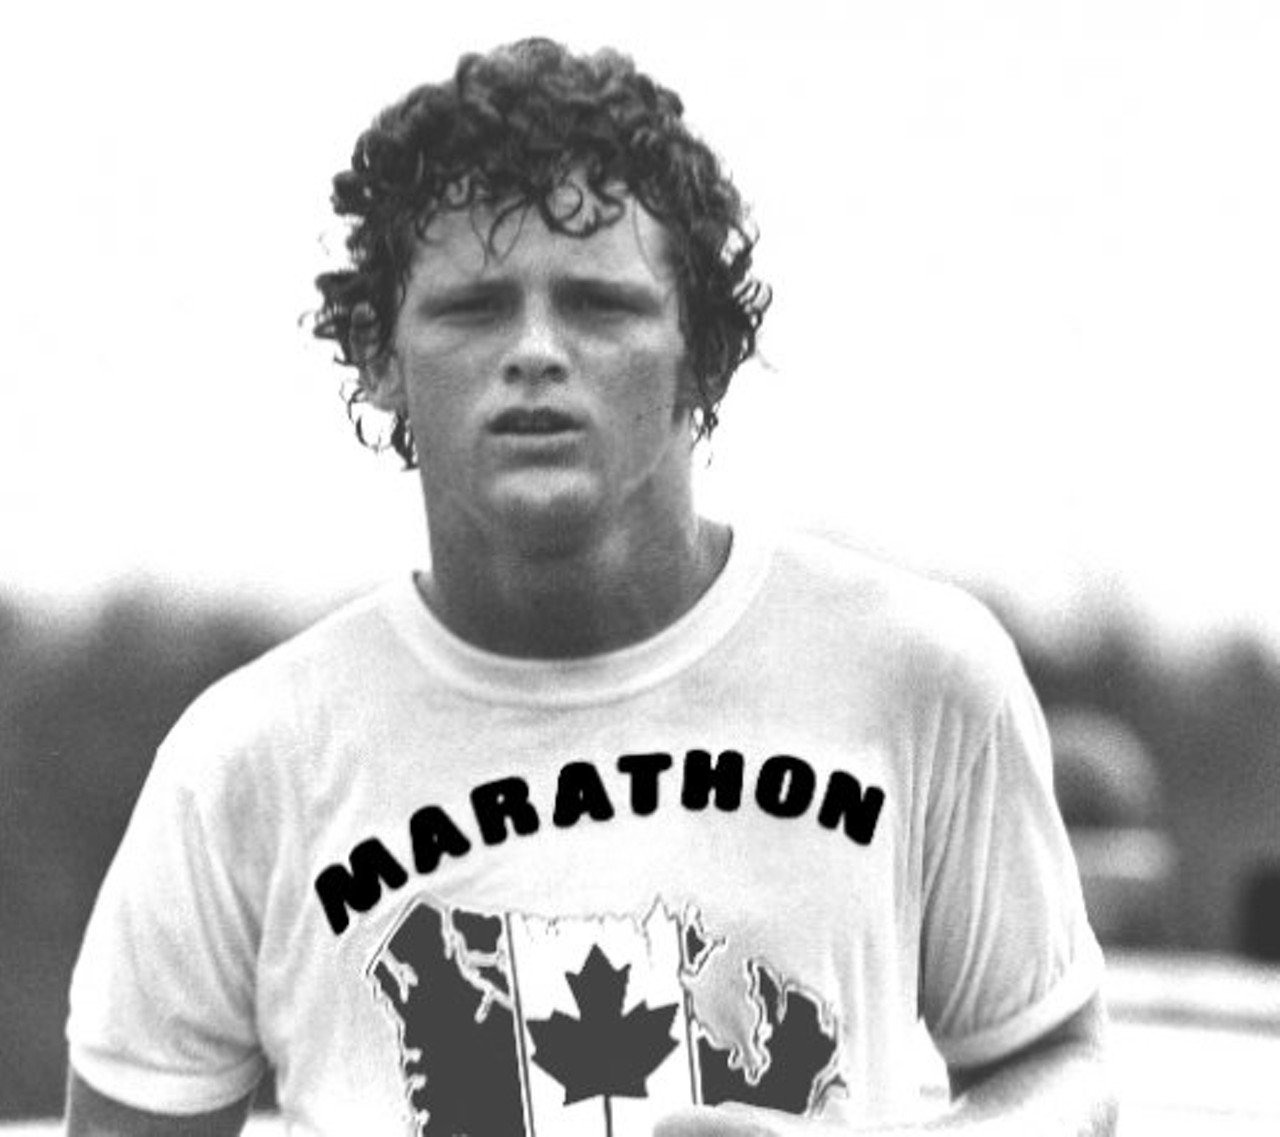 a biography of canadian famous athlete terry fox Donovan bailey athlete, broadcaster like terry fox, donovan bailey is a canadian sports hero through hard work on and off the track, donovan has touched and reached many canadians.